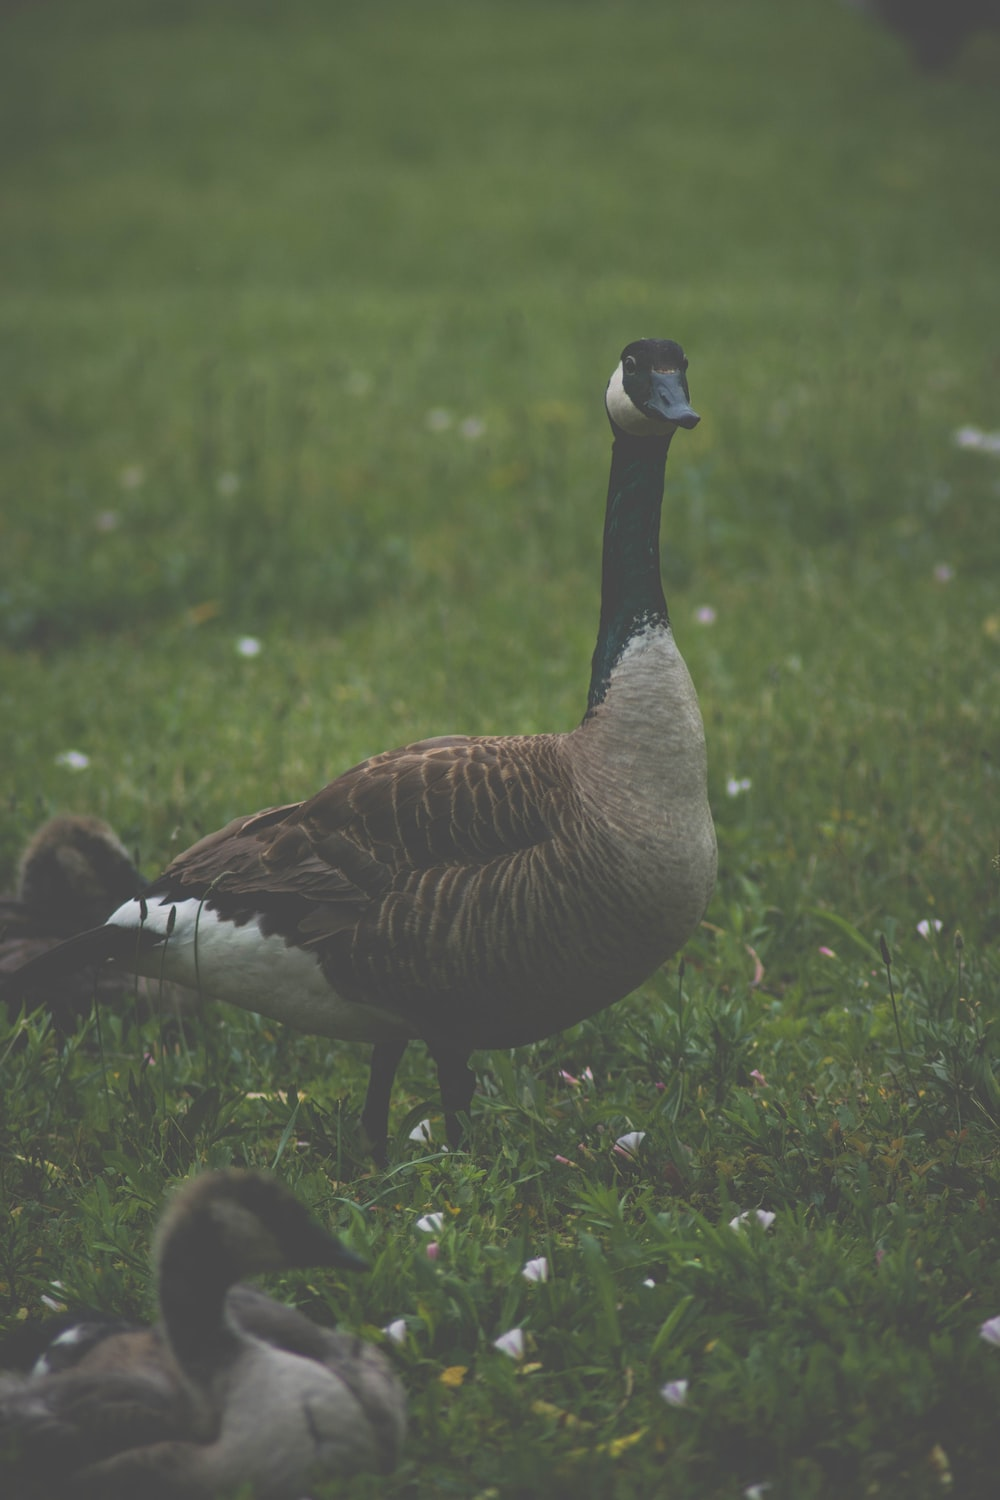 brown and black goose walking on grass field